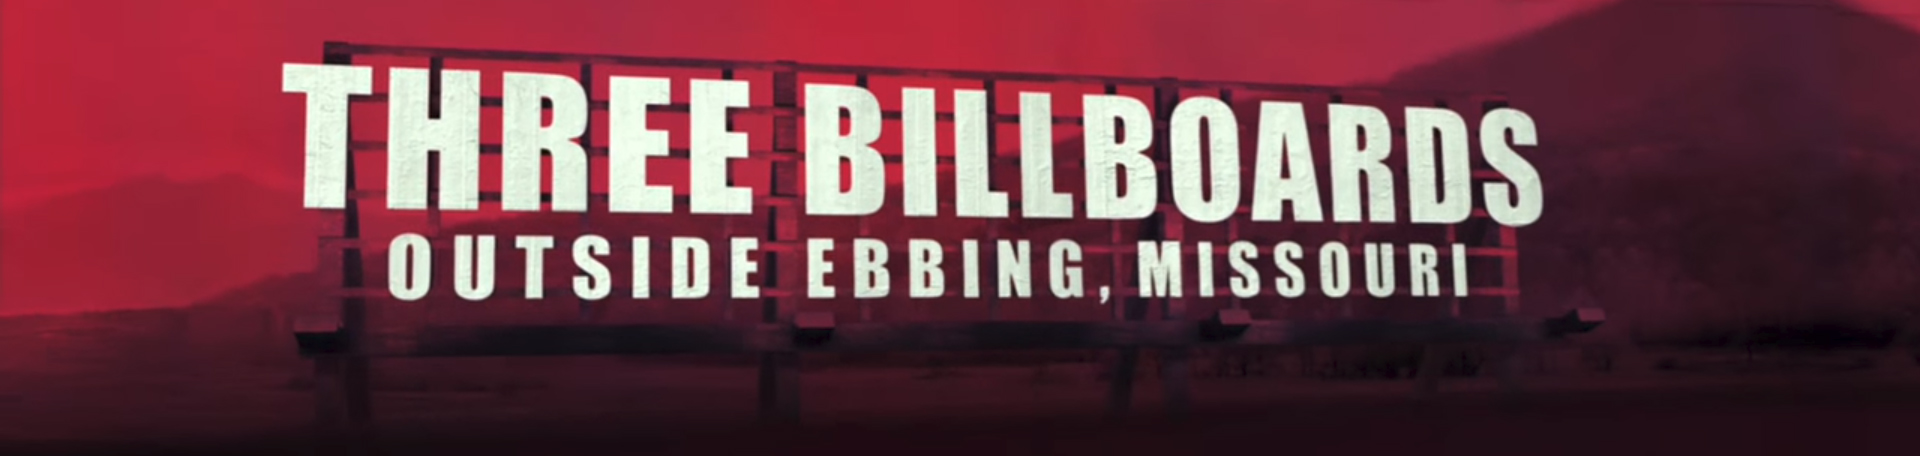 Three Billboards Outside Ebbing, Missouri. Image Credit: Fox Searchlight.